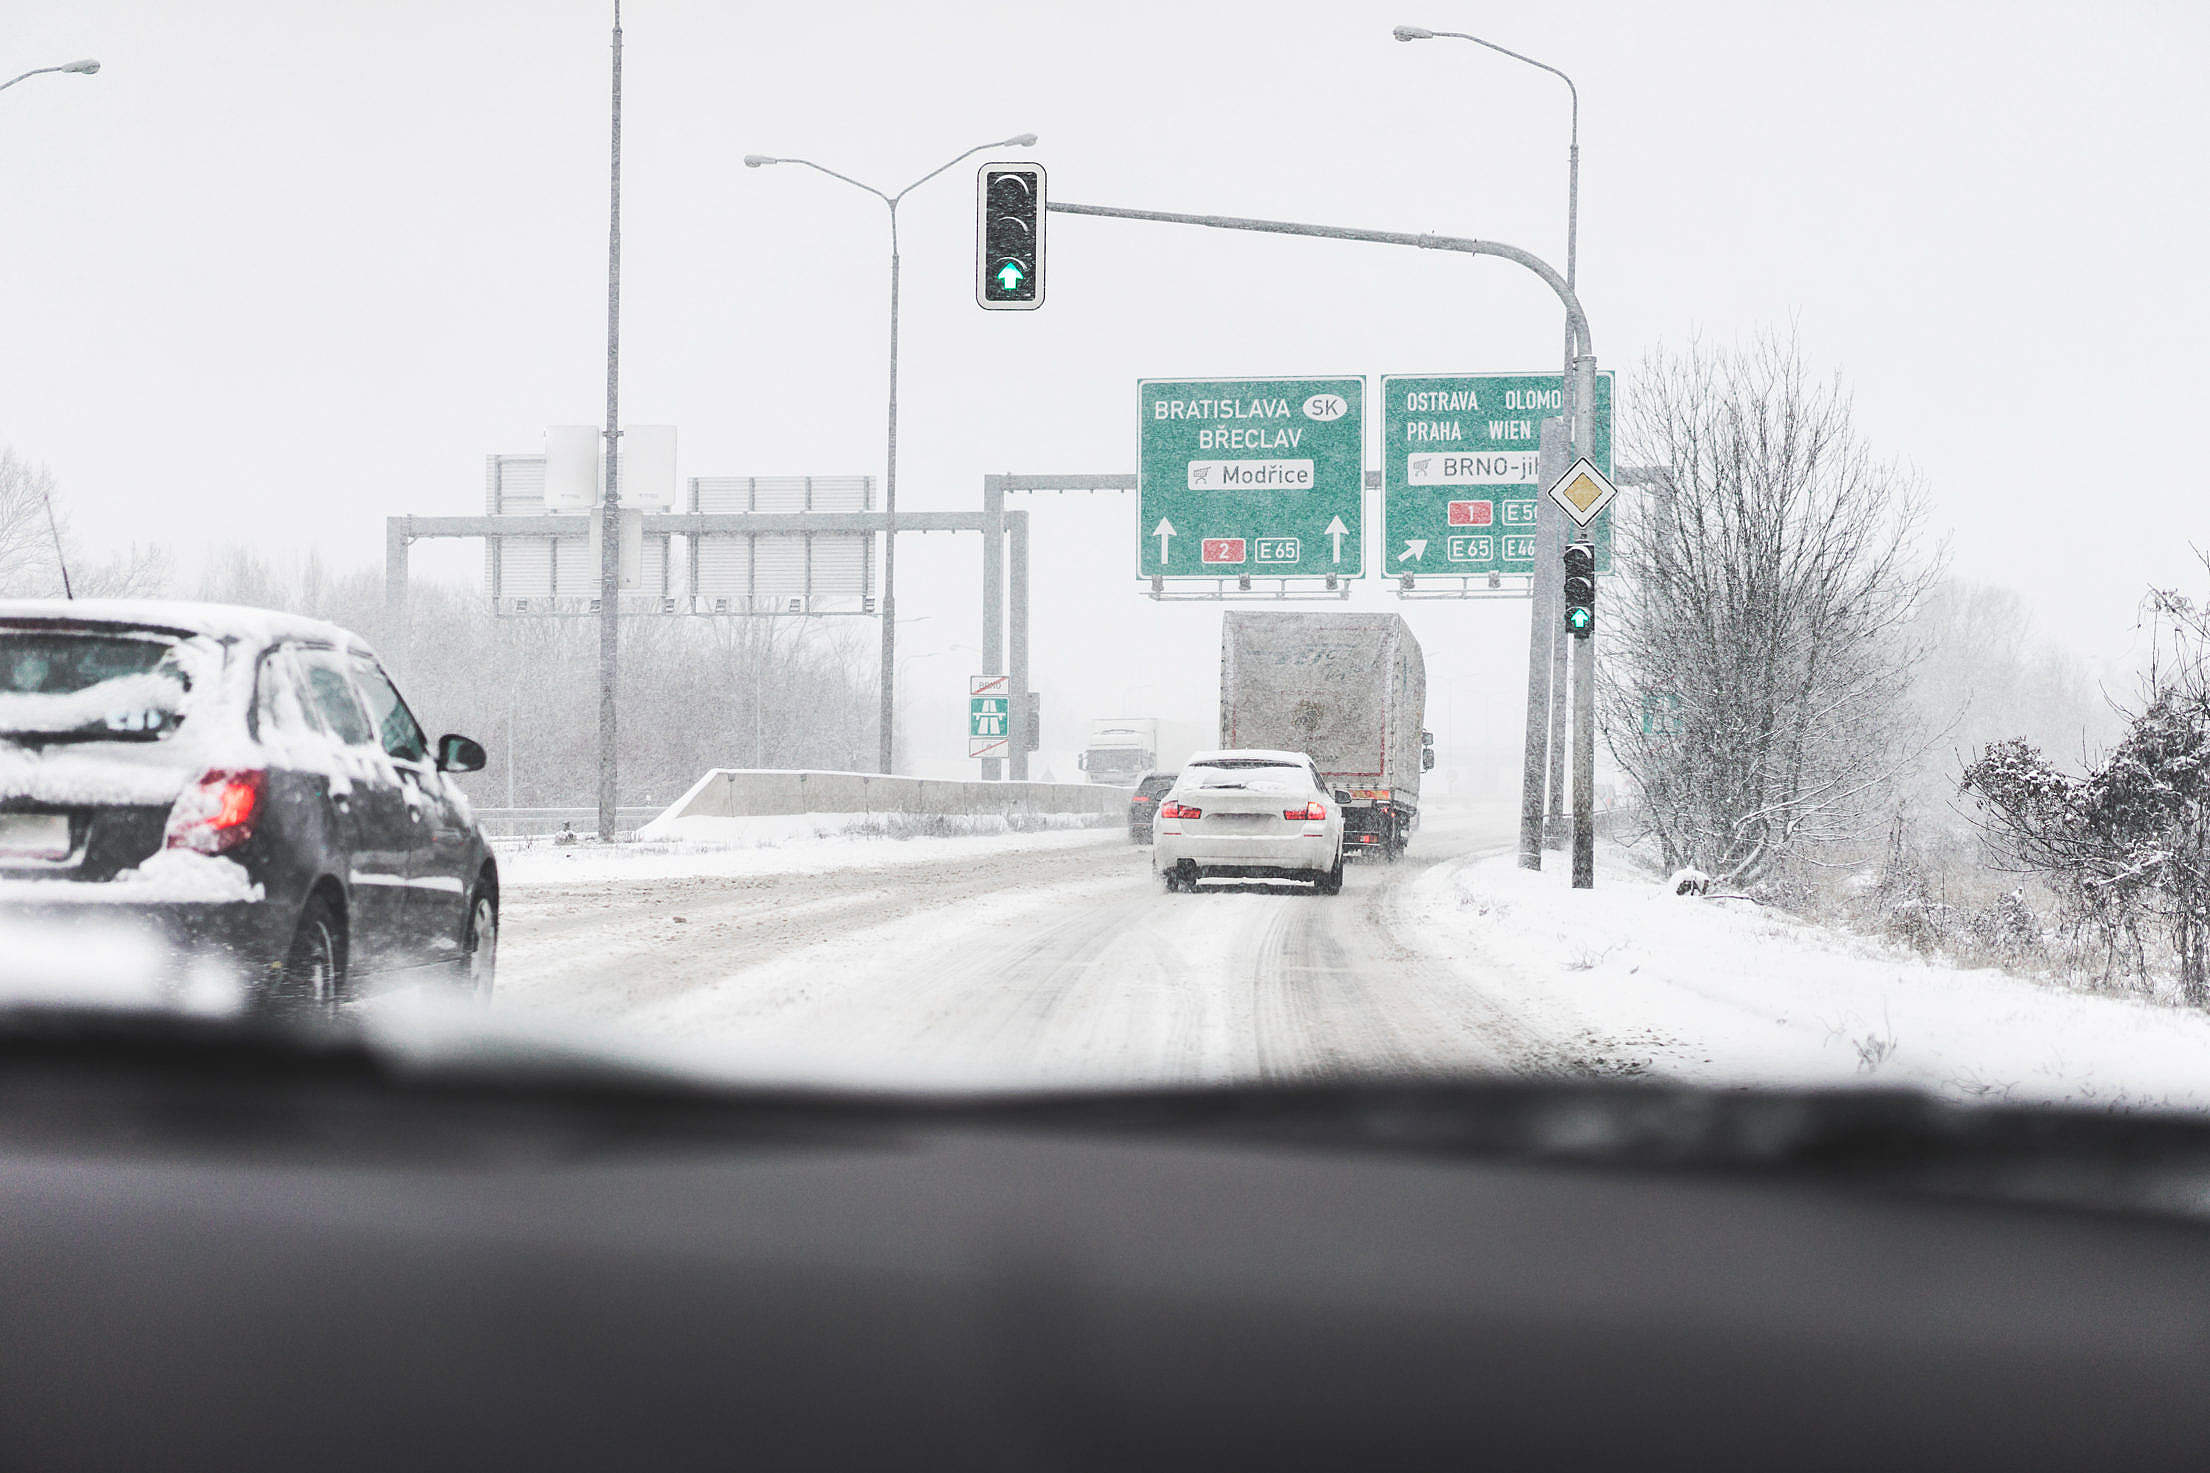 Driving in a Dangerous Snowy Weather on a Highway Free Stock Photo